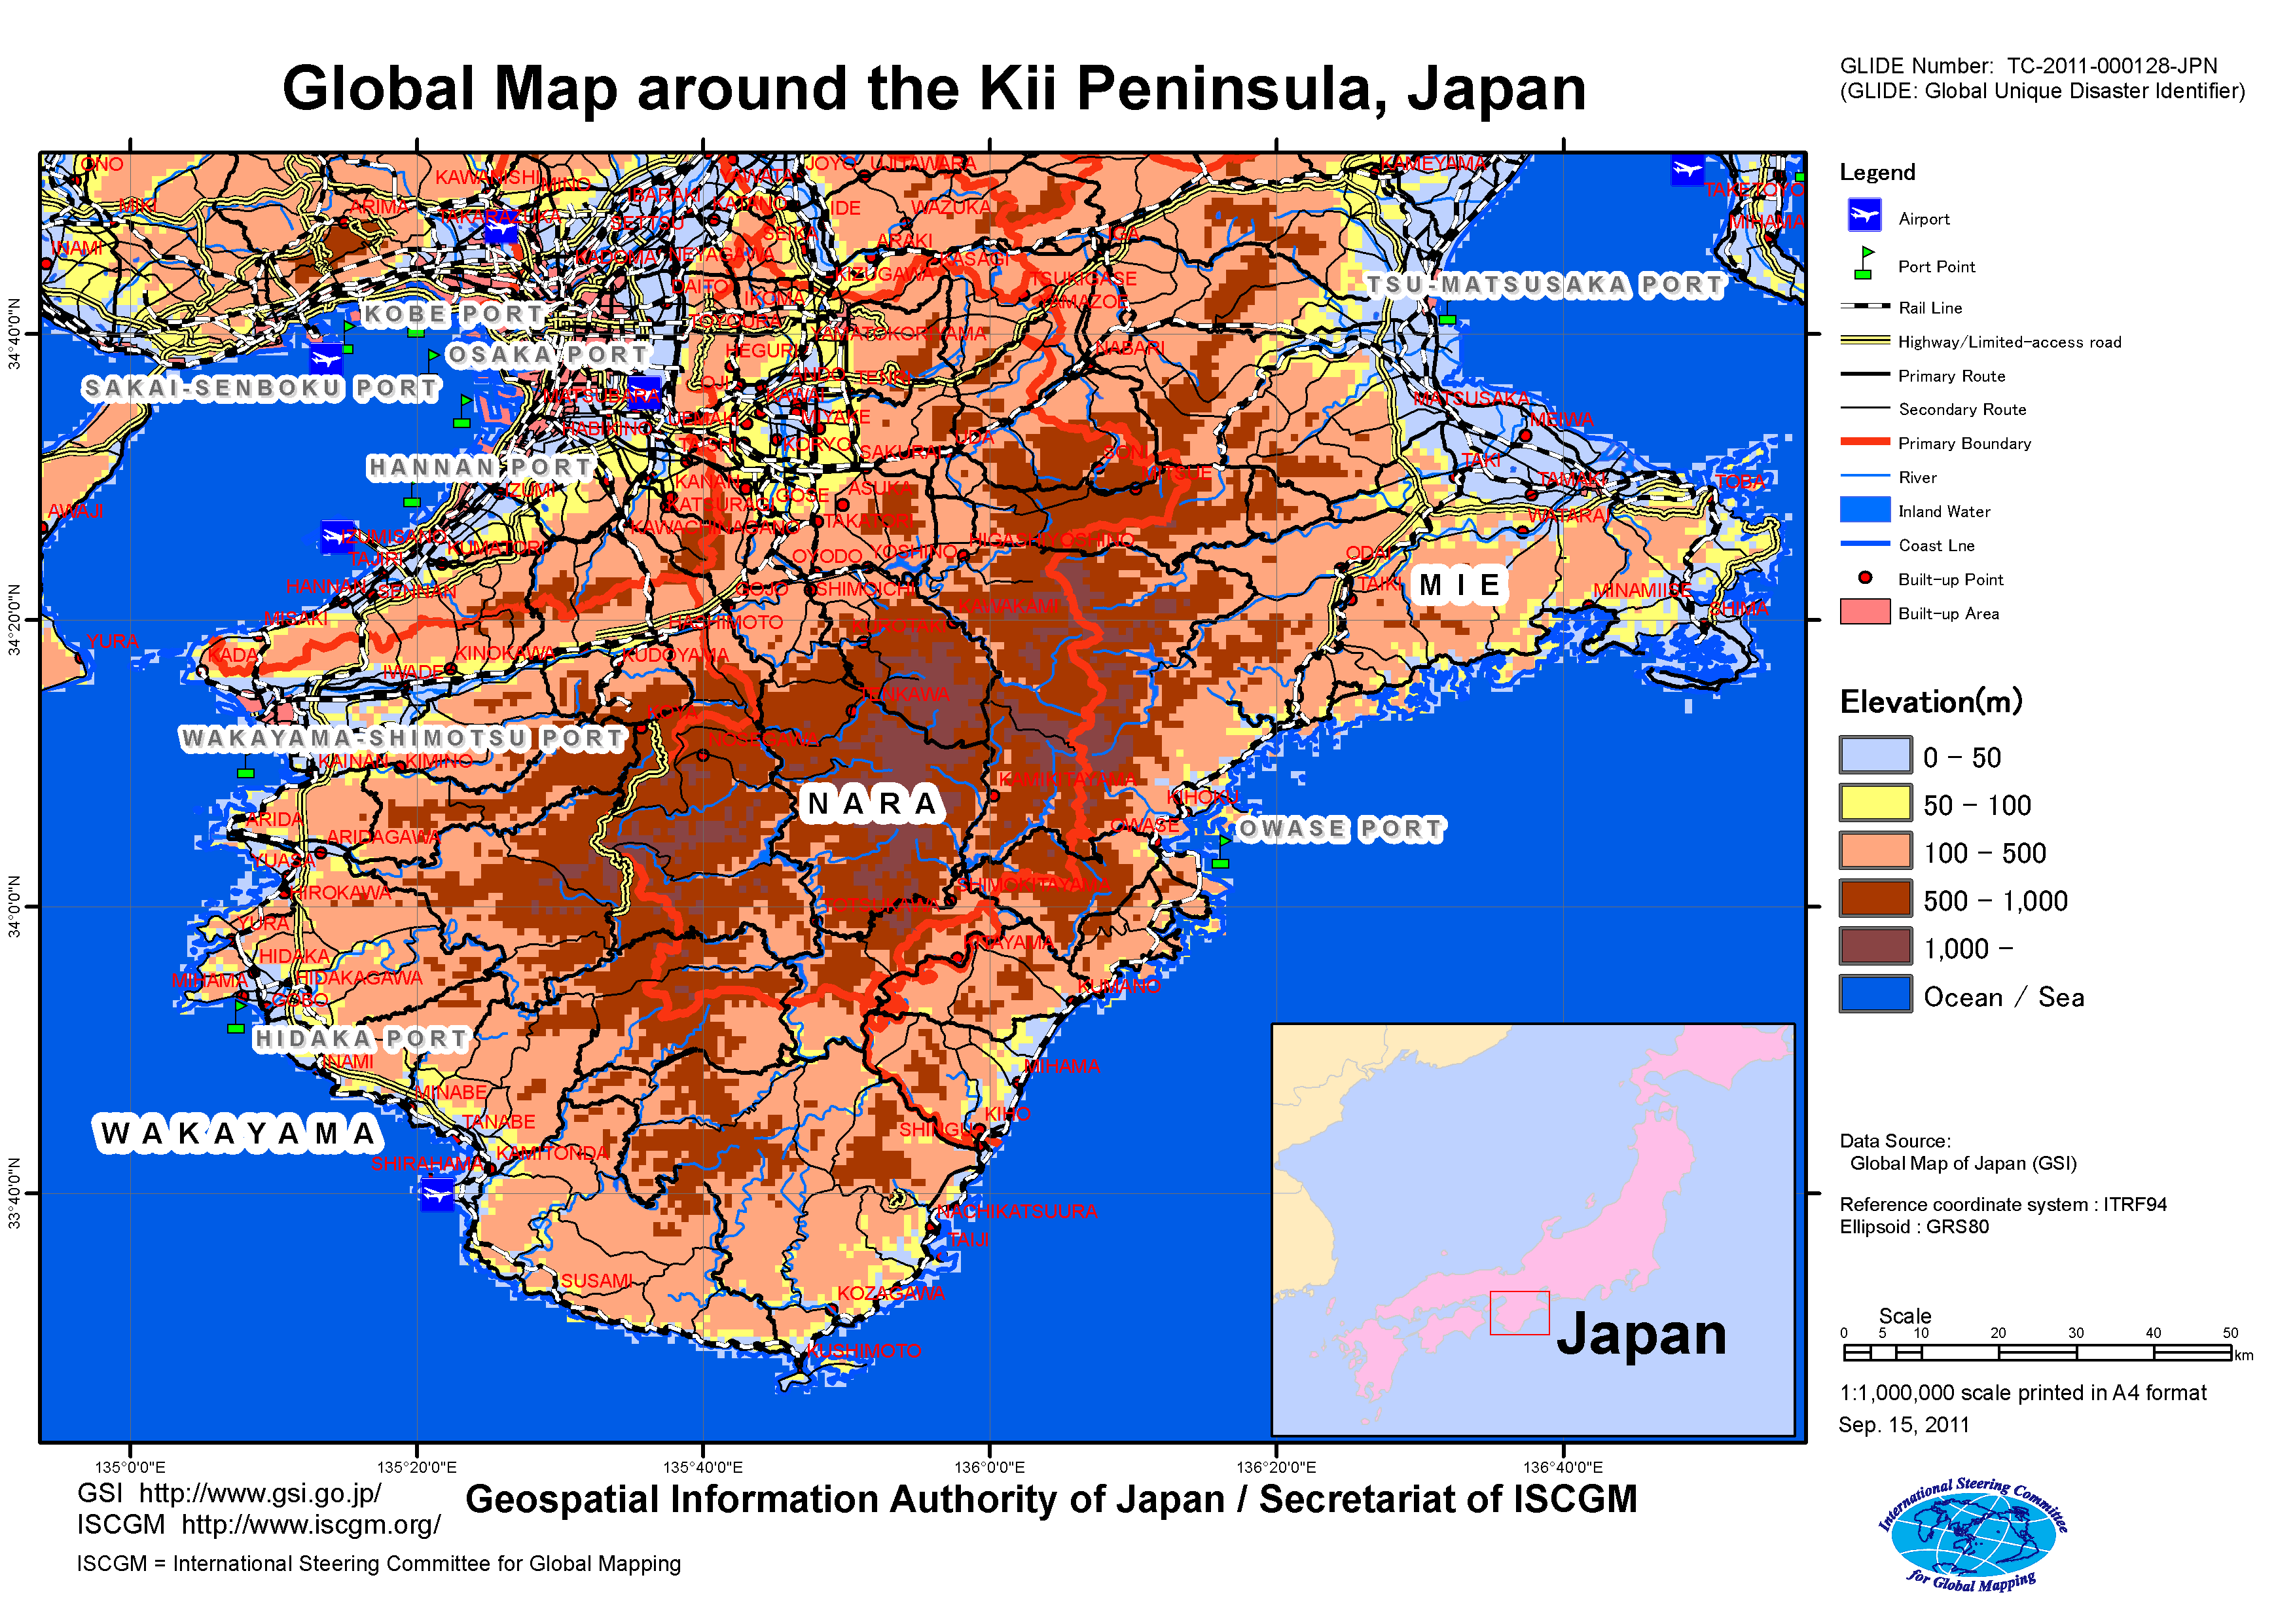 Typhoon In The Kii Peninsula Japan September GSI HOME PAGE - Japan elevation map